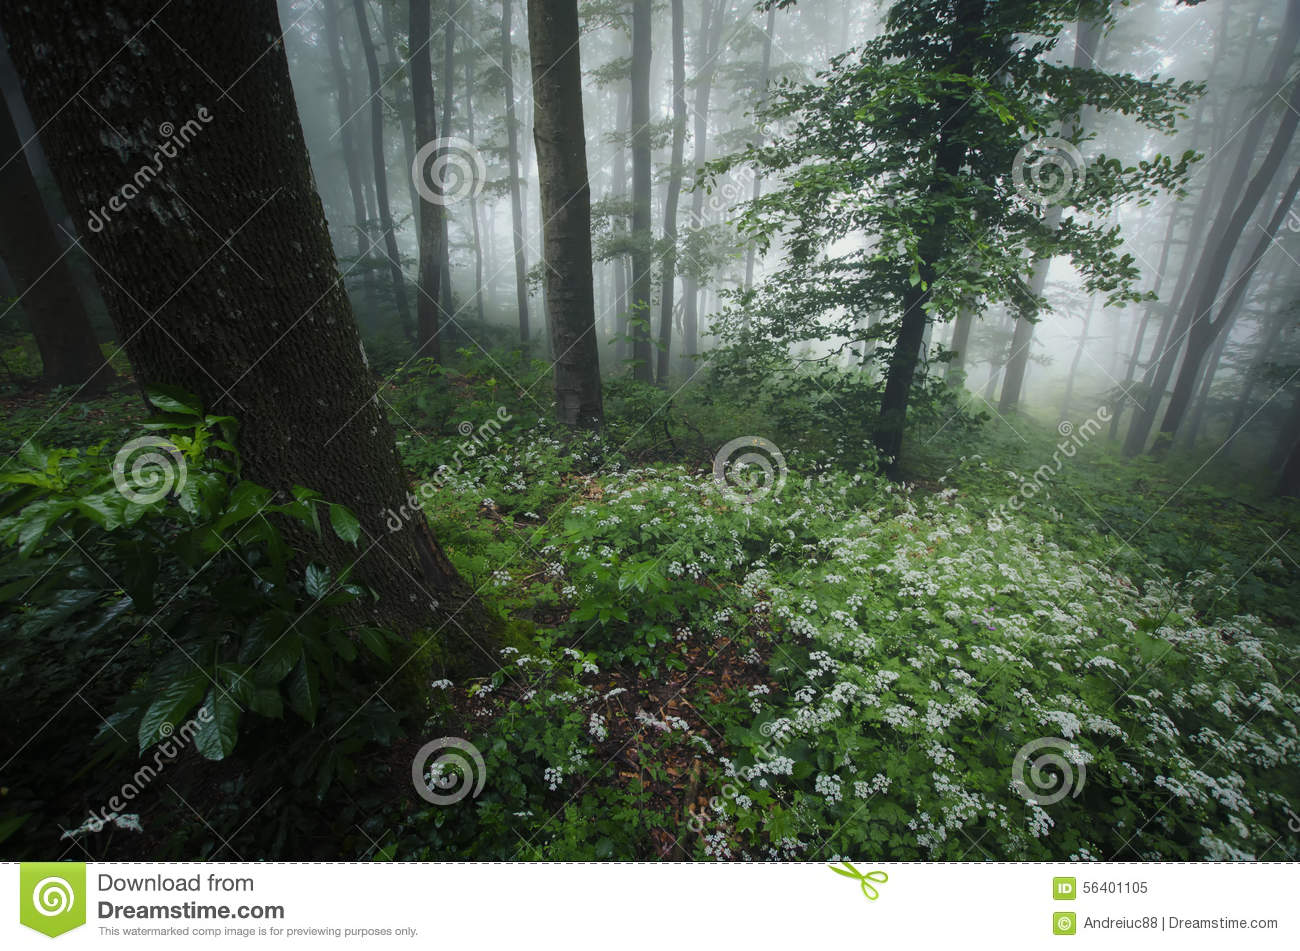 Spring in the forest with white flowers and fog